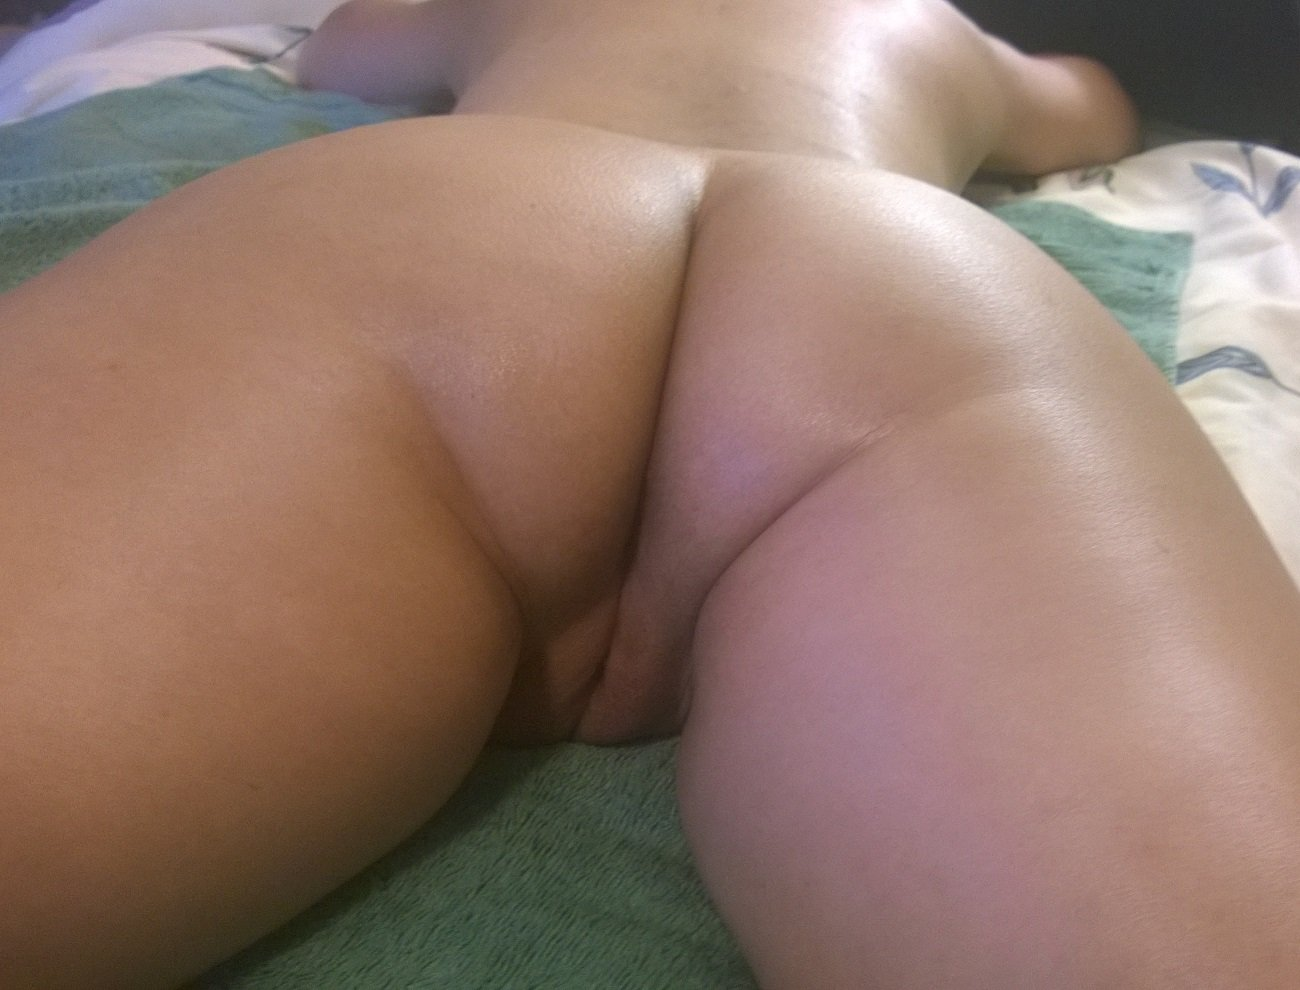 Massage my ass